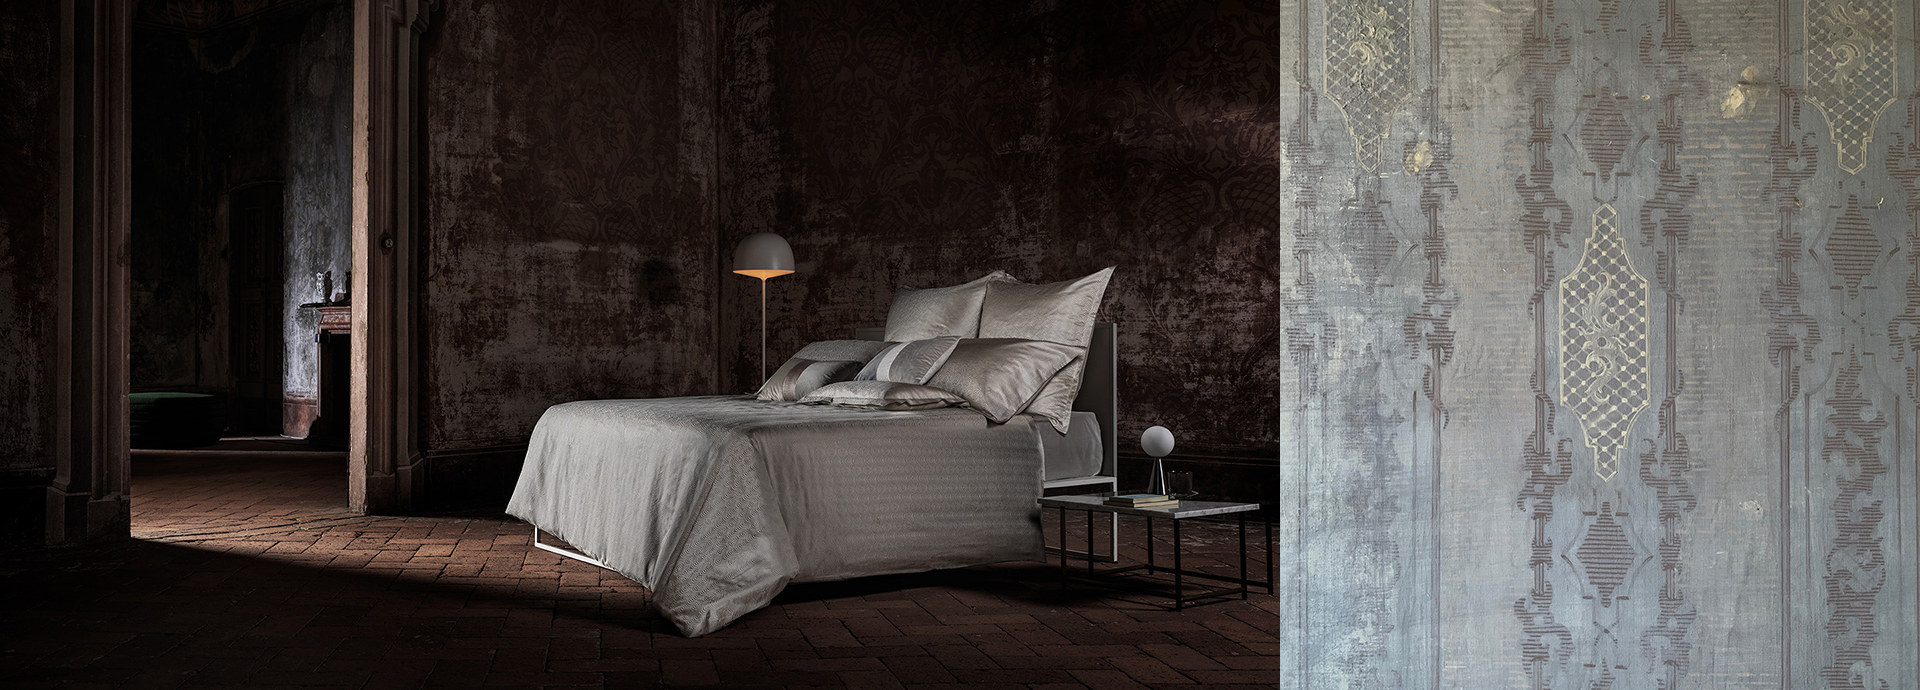 La Perla - La Perla Home Collection shine among frescoes and precious fabrics